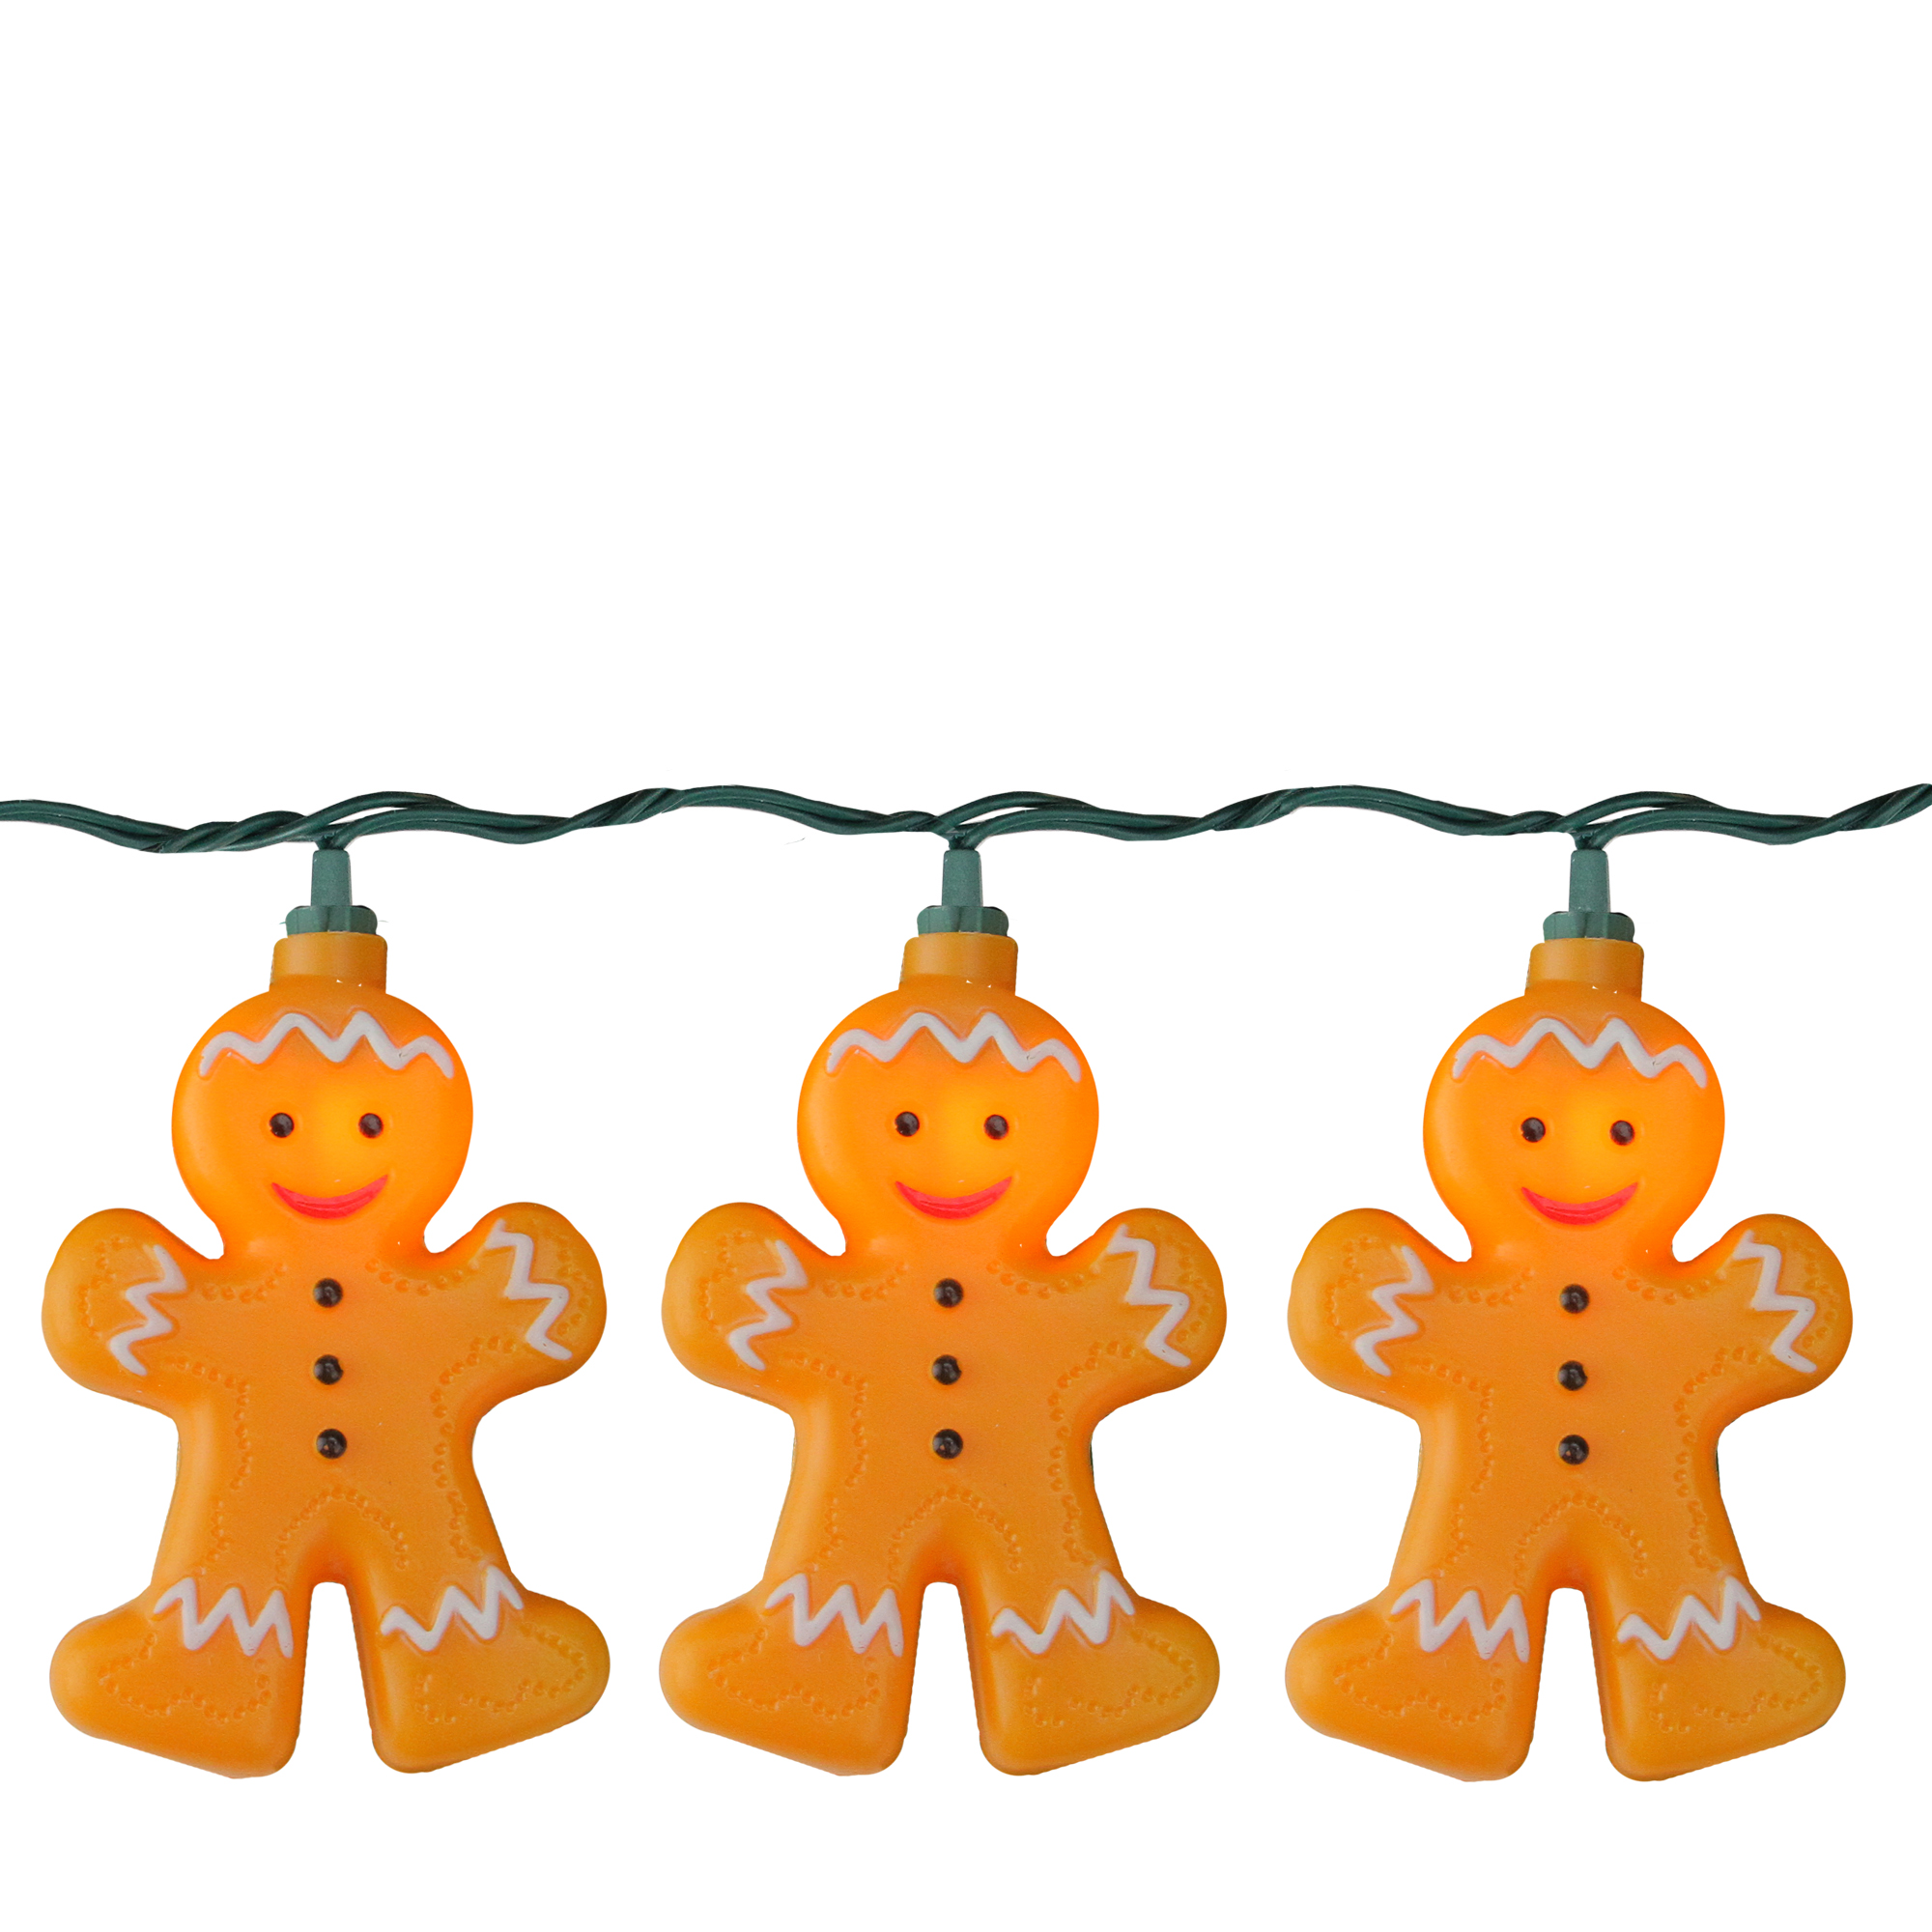 Set of 10 Smiling Gingerbread Cookie Man Christmas Lights - 10 ft Green Wire